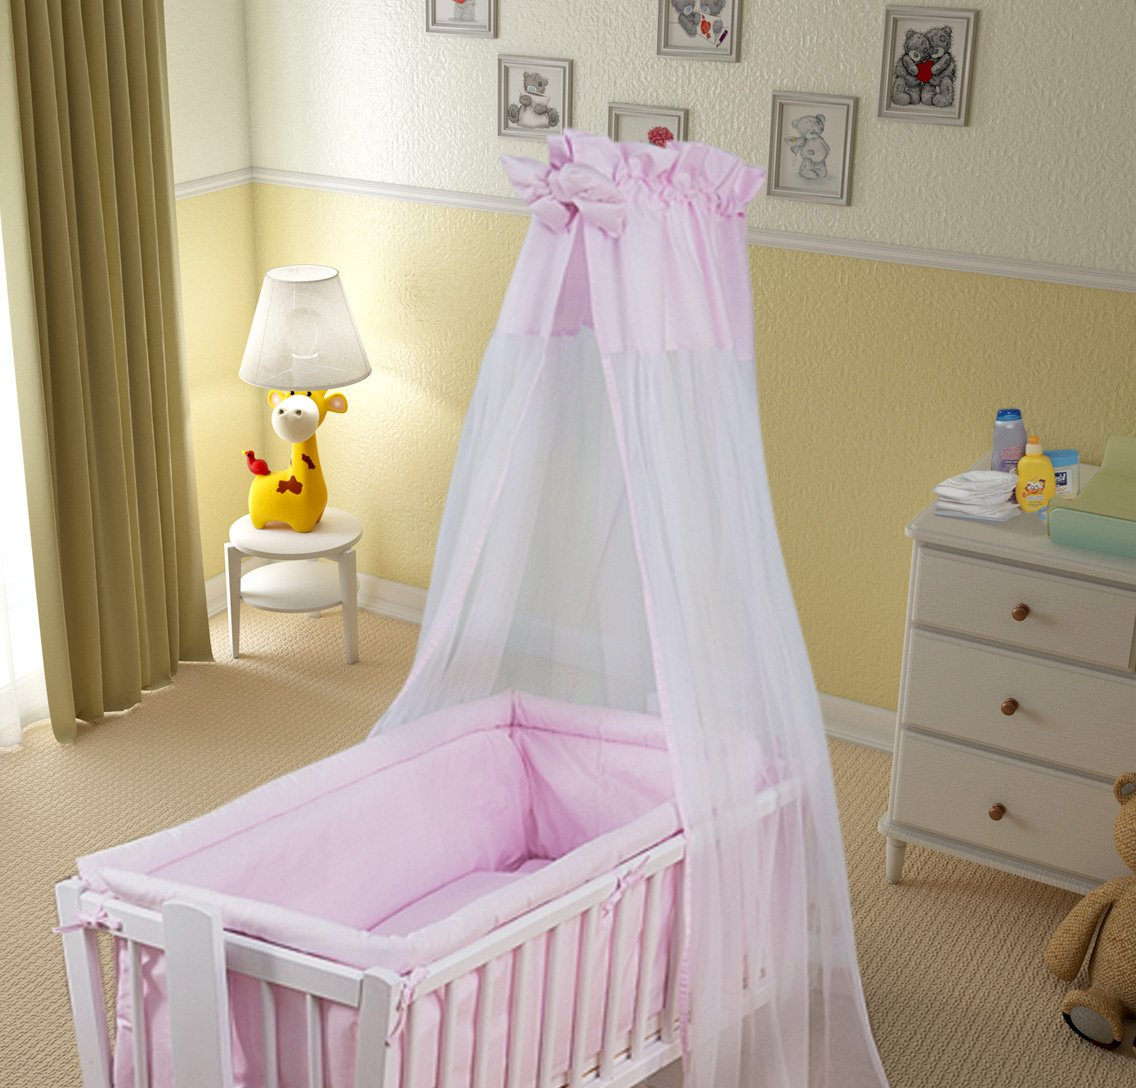 Plain Pink 3 Piece Baby Bedding Set with Thick Bumper to fit 140x70cm Cot Bed